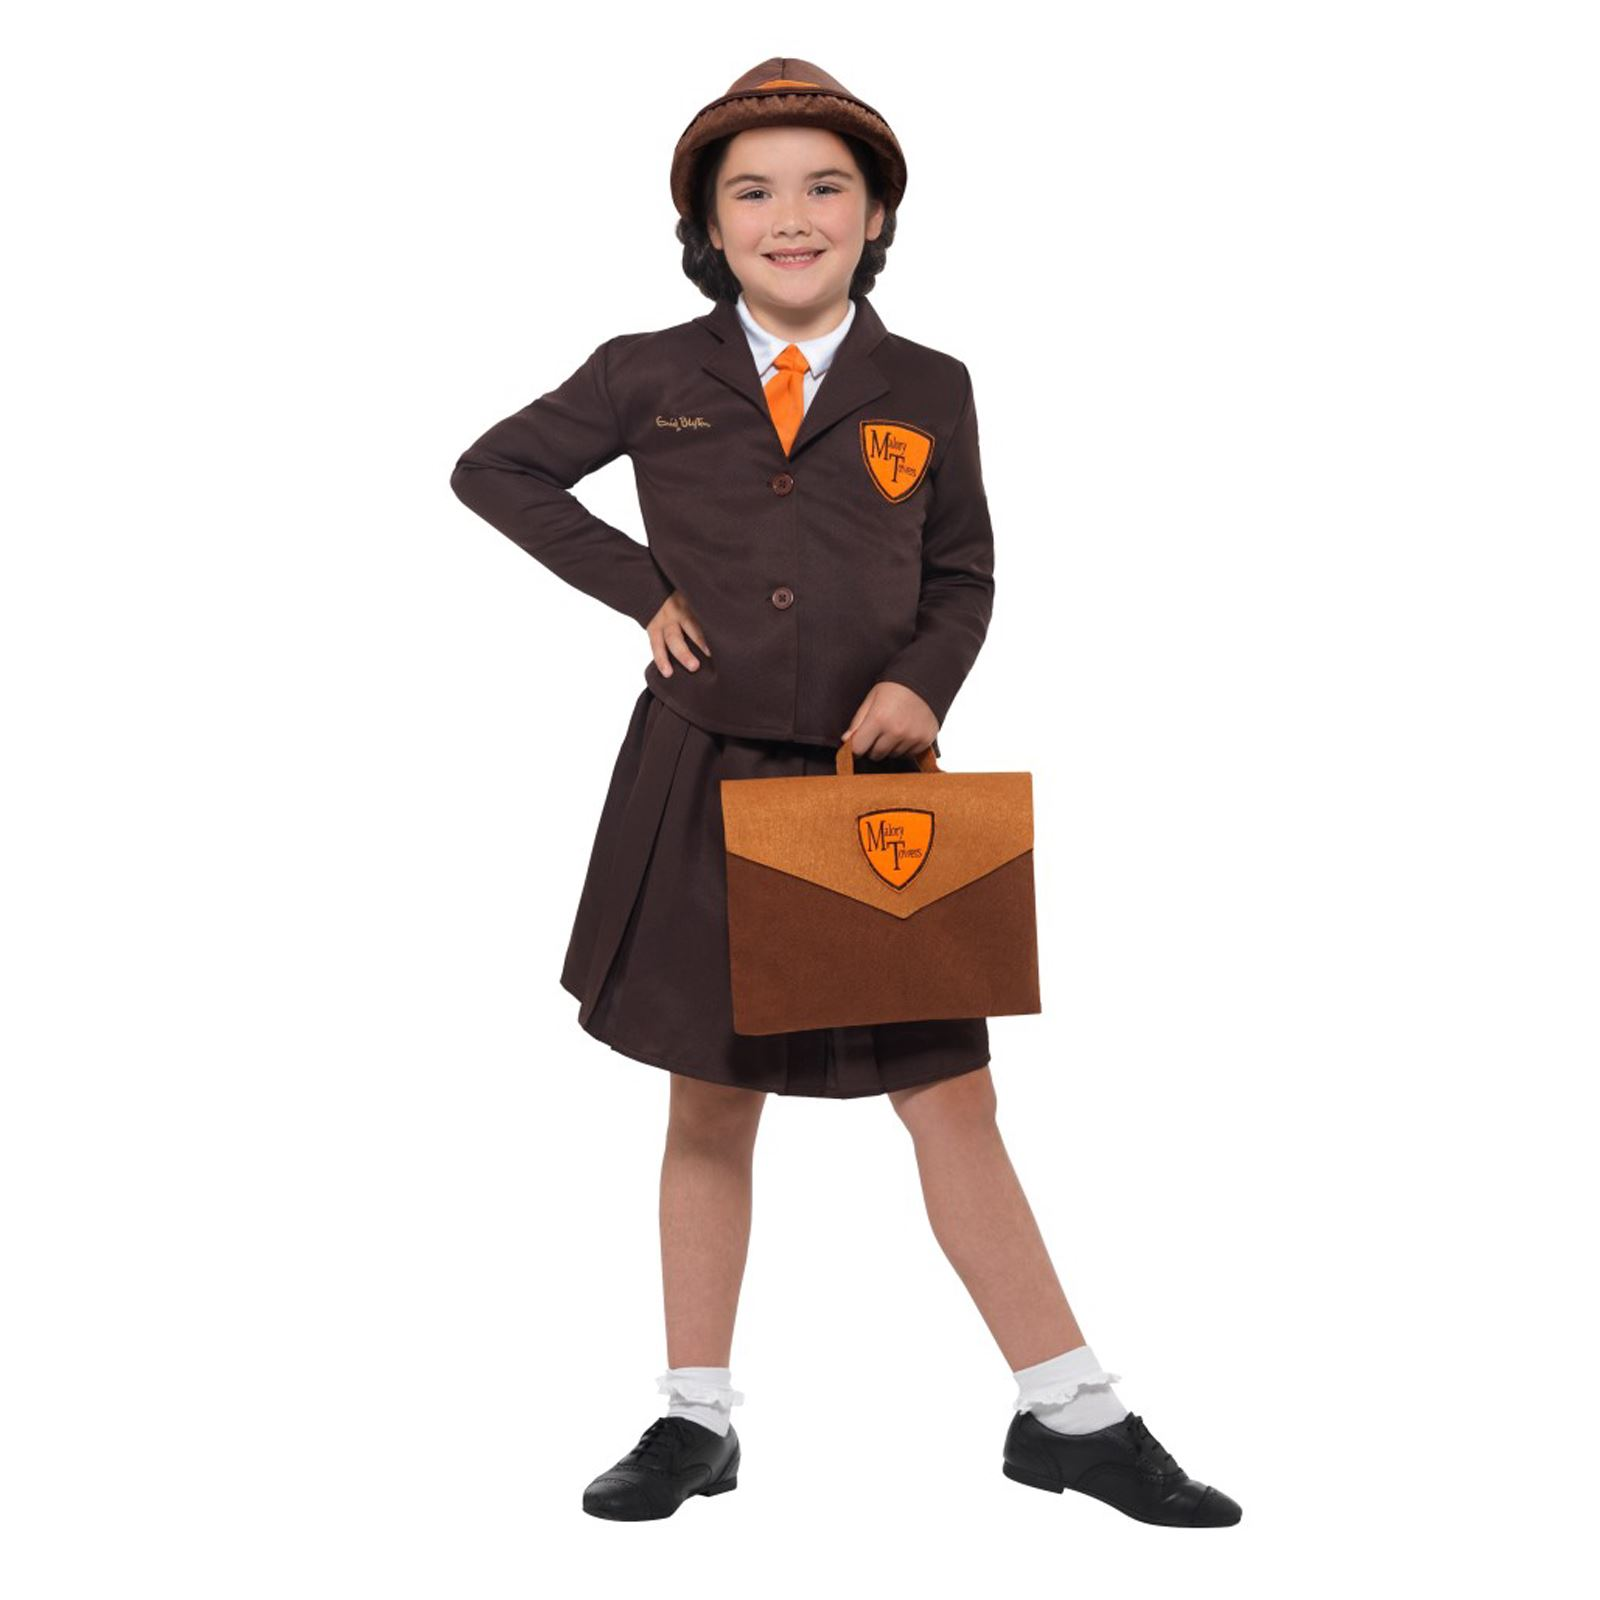 Malory Towers Girls Fancy Dress School Uniform Book day Kids Childrens Costume